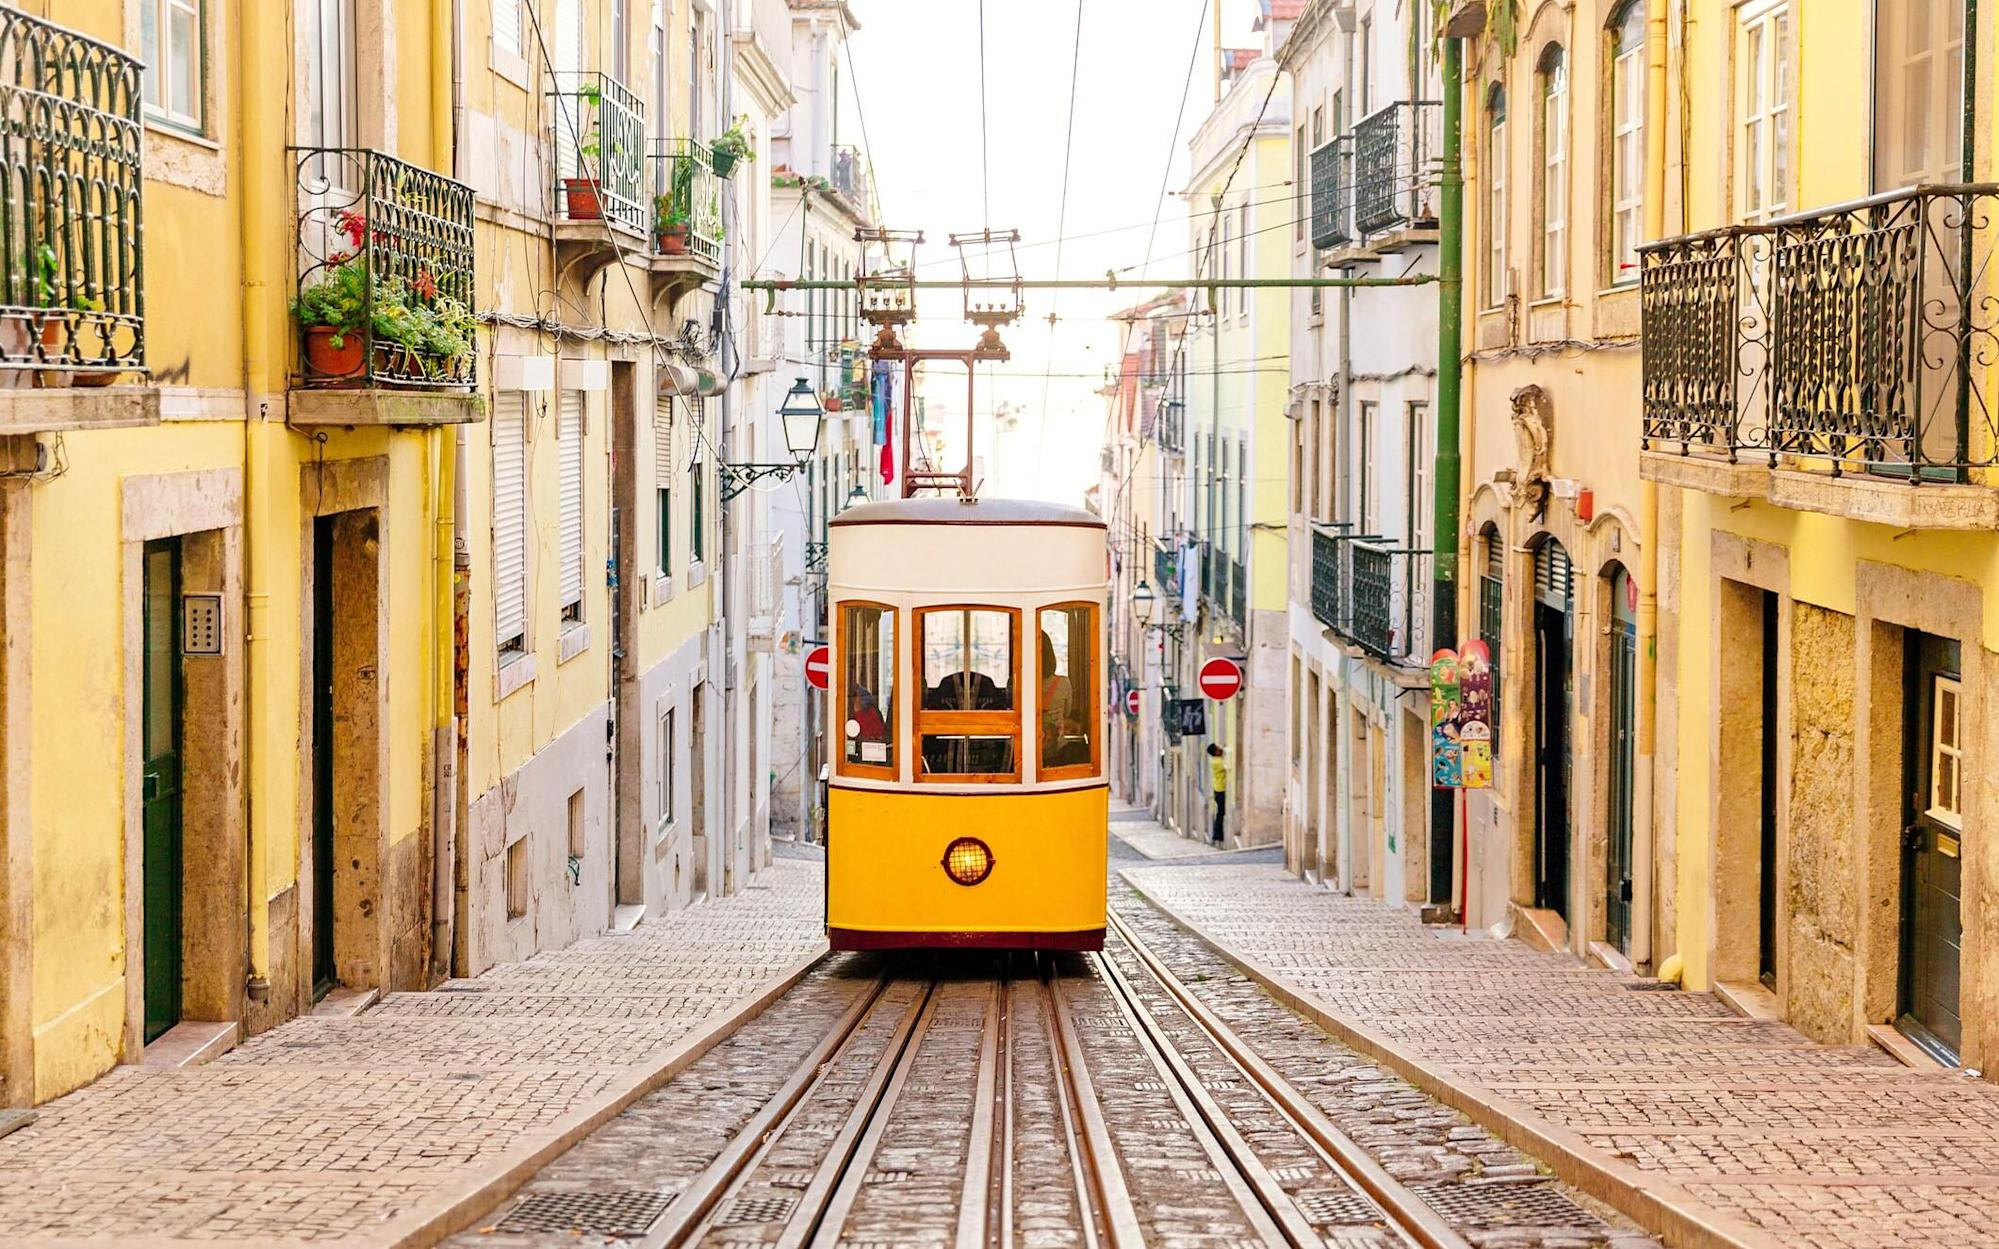 A postcard from Portugal, where the locals are reclaiming their tourist sights